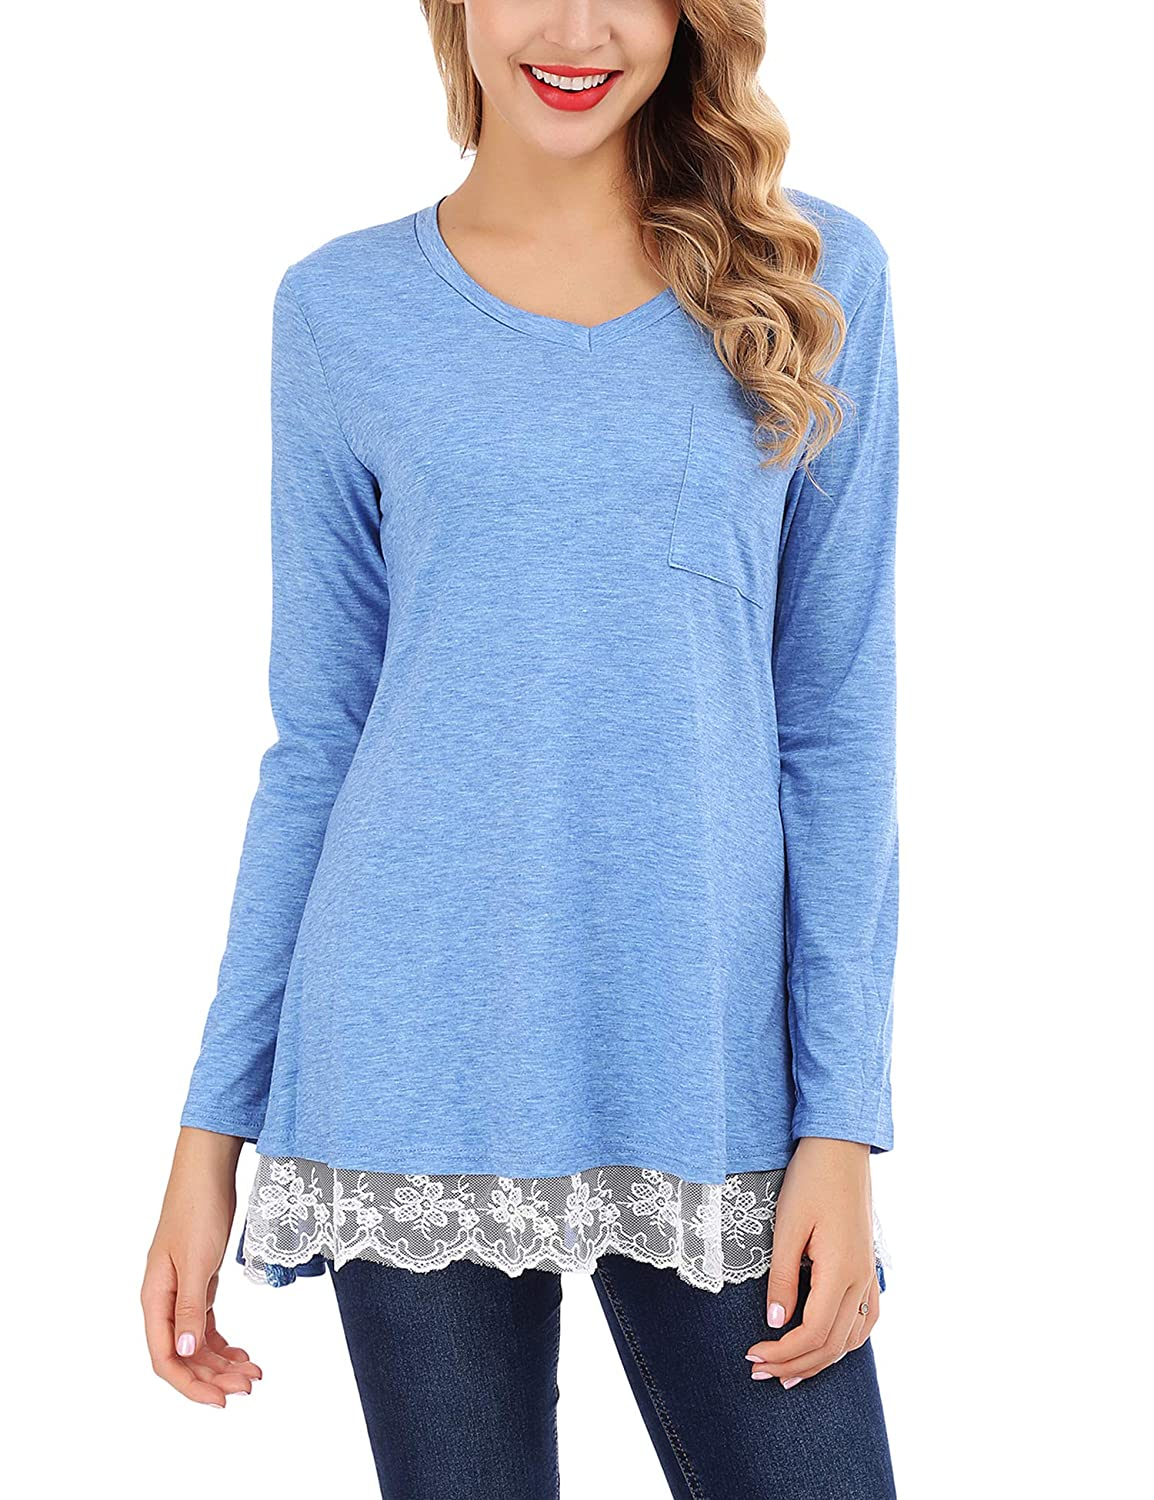 b08a36e8018 Casual Tunic Shirts: Long Sleeve Lace Tunic Shirts Loose Tunic Tops for  Women, Ladies, Juniors and Teen girls. This tunics is made of lightweight  and soft ...